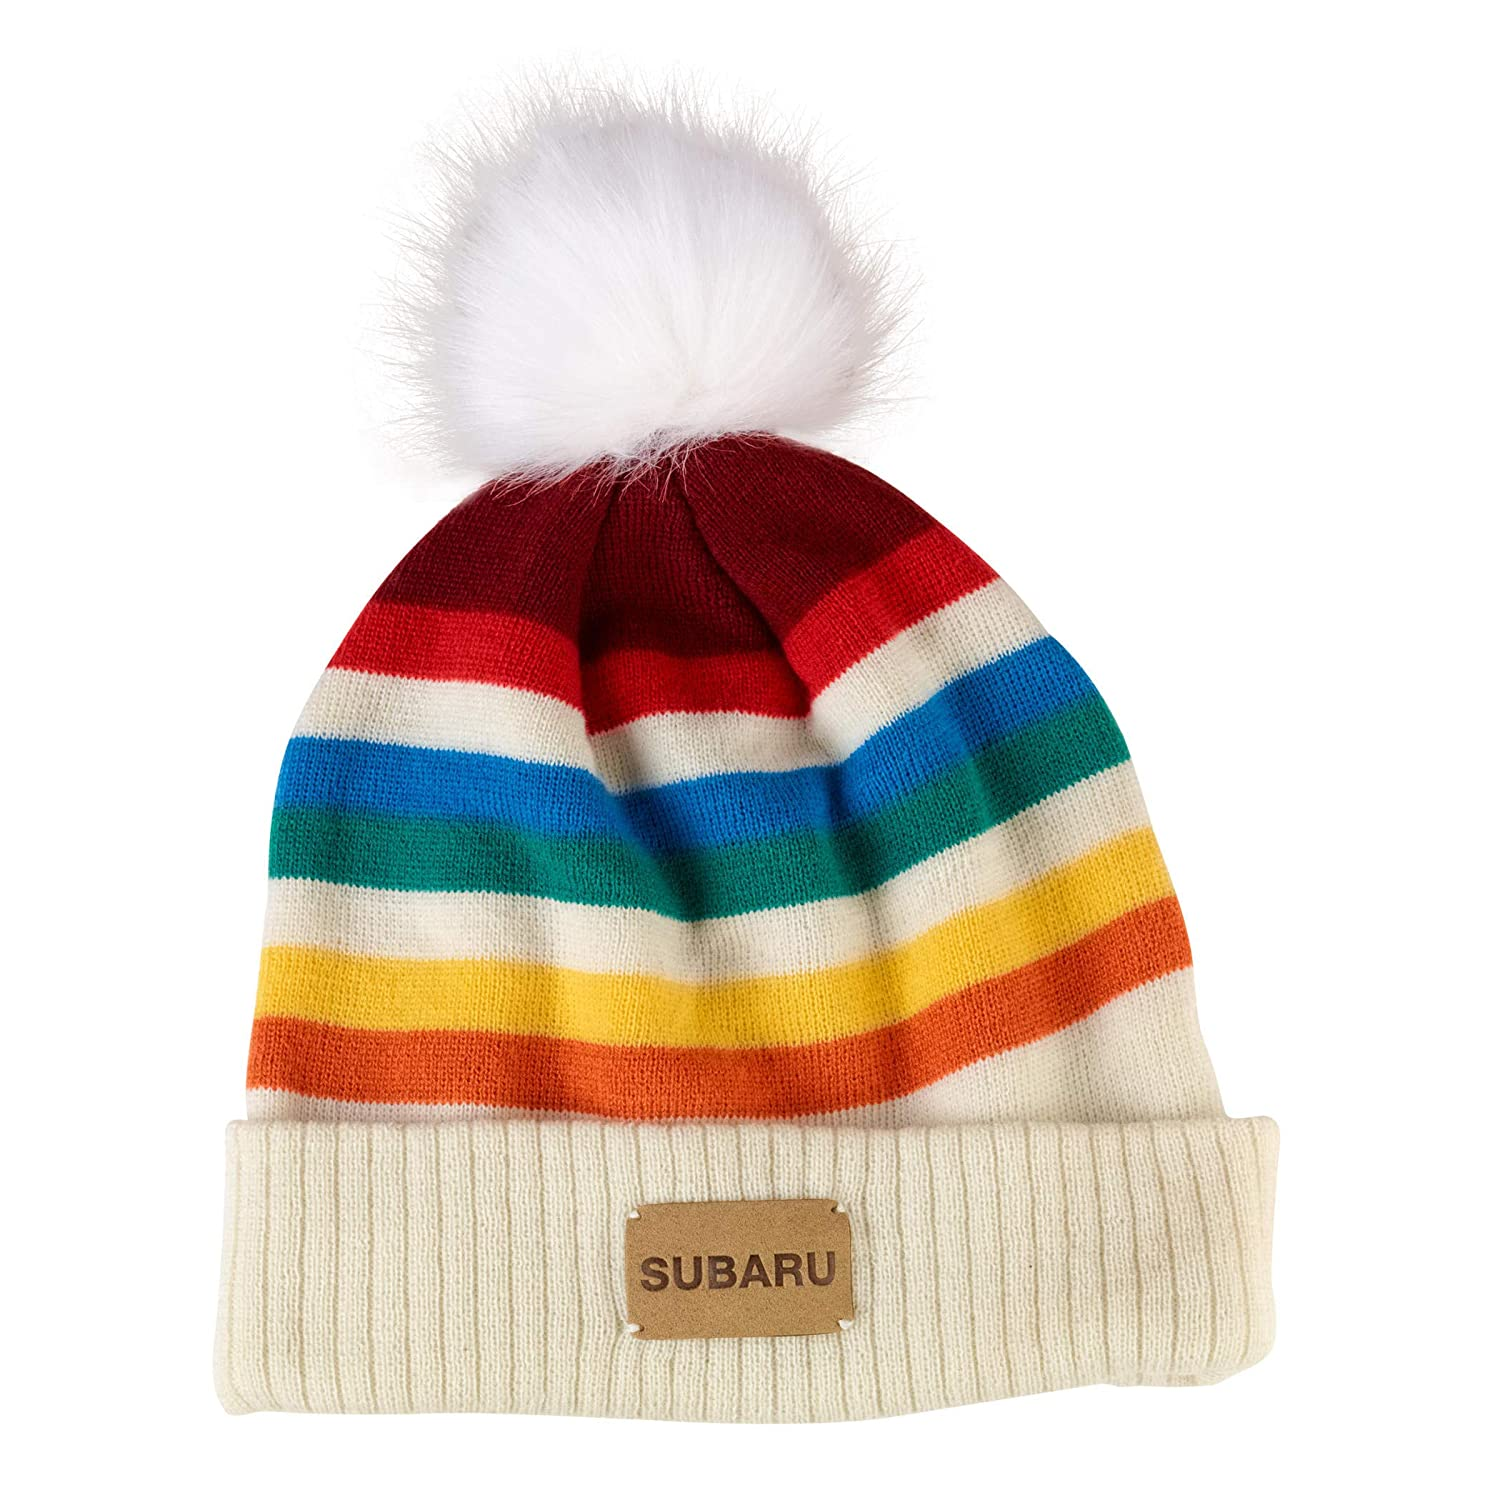 SUBARU Hat Genuine Ladies Rainbow Beanie Hat Impreza Forester Legacy Outback STI WRX Racing Ski Snow New